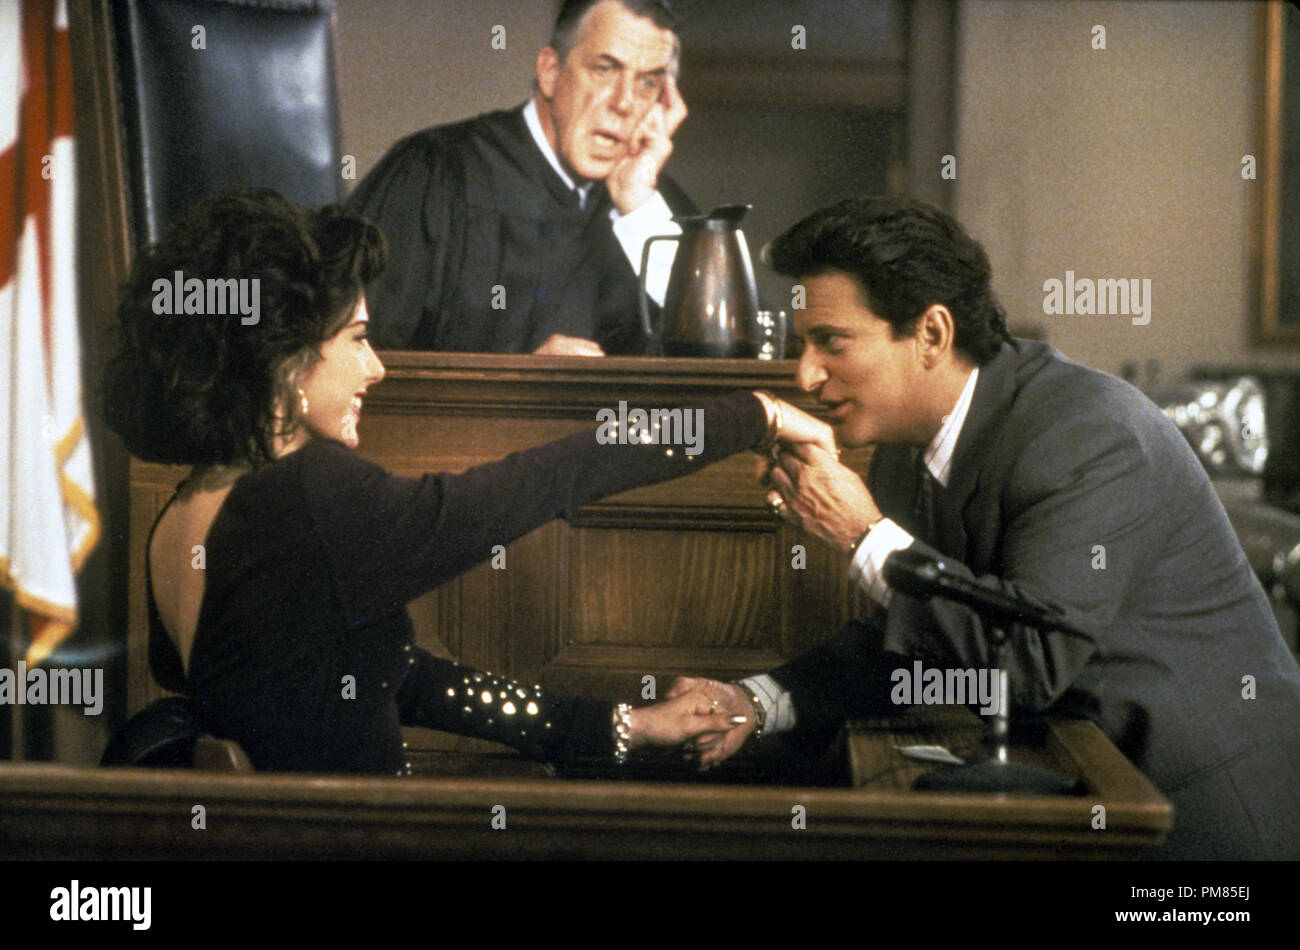 Film still or Publicity still from 'My Cousin Vinny' Marisa Tomei, Fred Gwynne, Joe Pesci © 1992 20th Century Fox Photo Credit: Ben Glass All Rights Reserved   File Reference # 31487_164THA  For Editorial Use Only - Stock Image